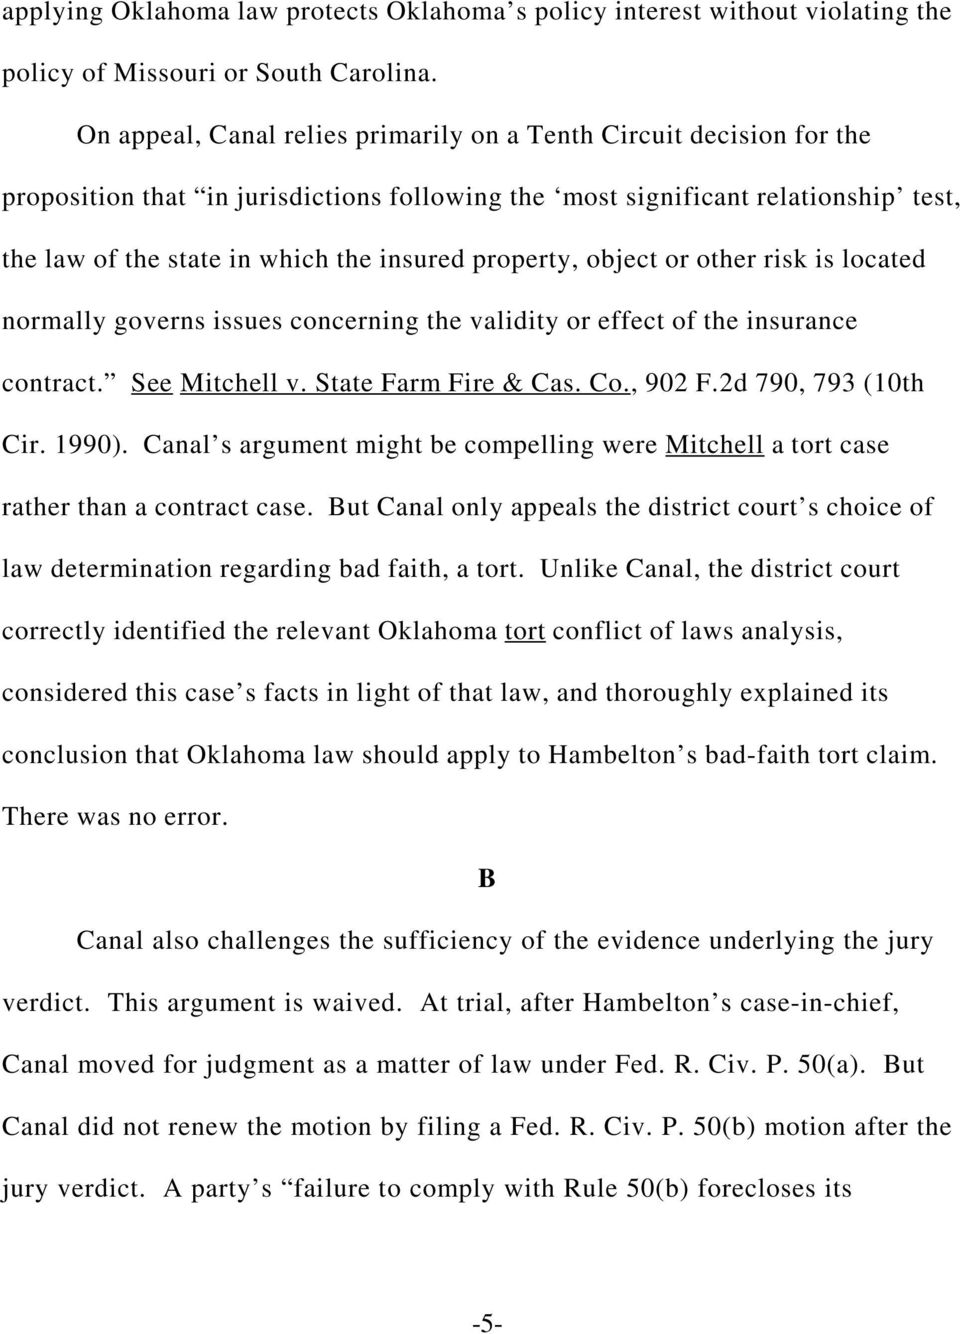 property, object or other risk is located normally governs issues concerning the validity or effect of the insurance contract. See Mitchell v. State Farm Fire & Cas. Co., 902 F.2d 790, 793 (10th Cir.